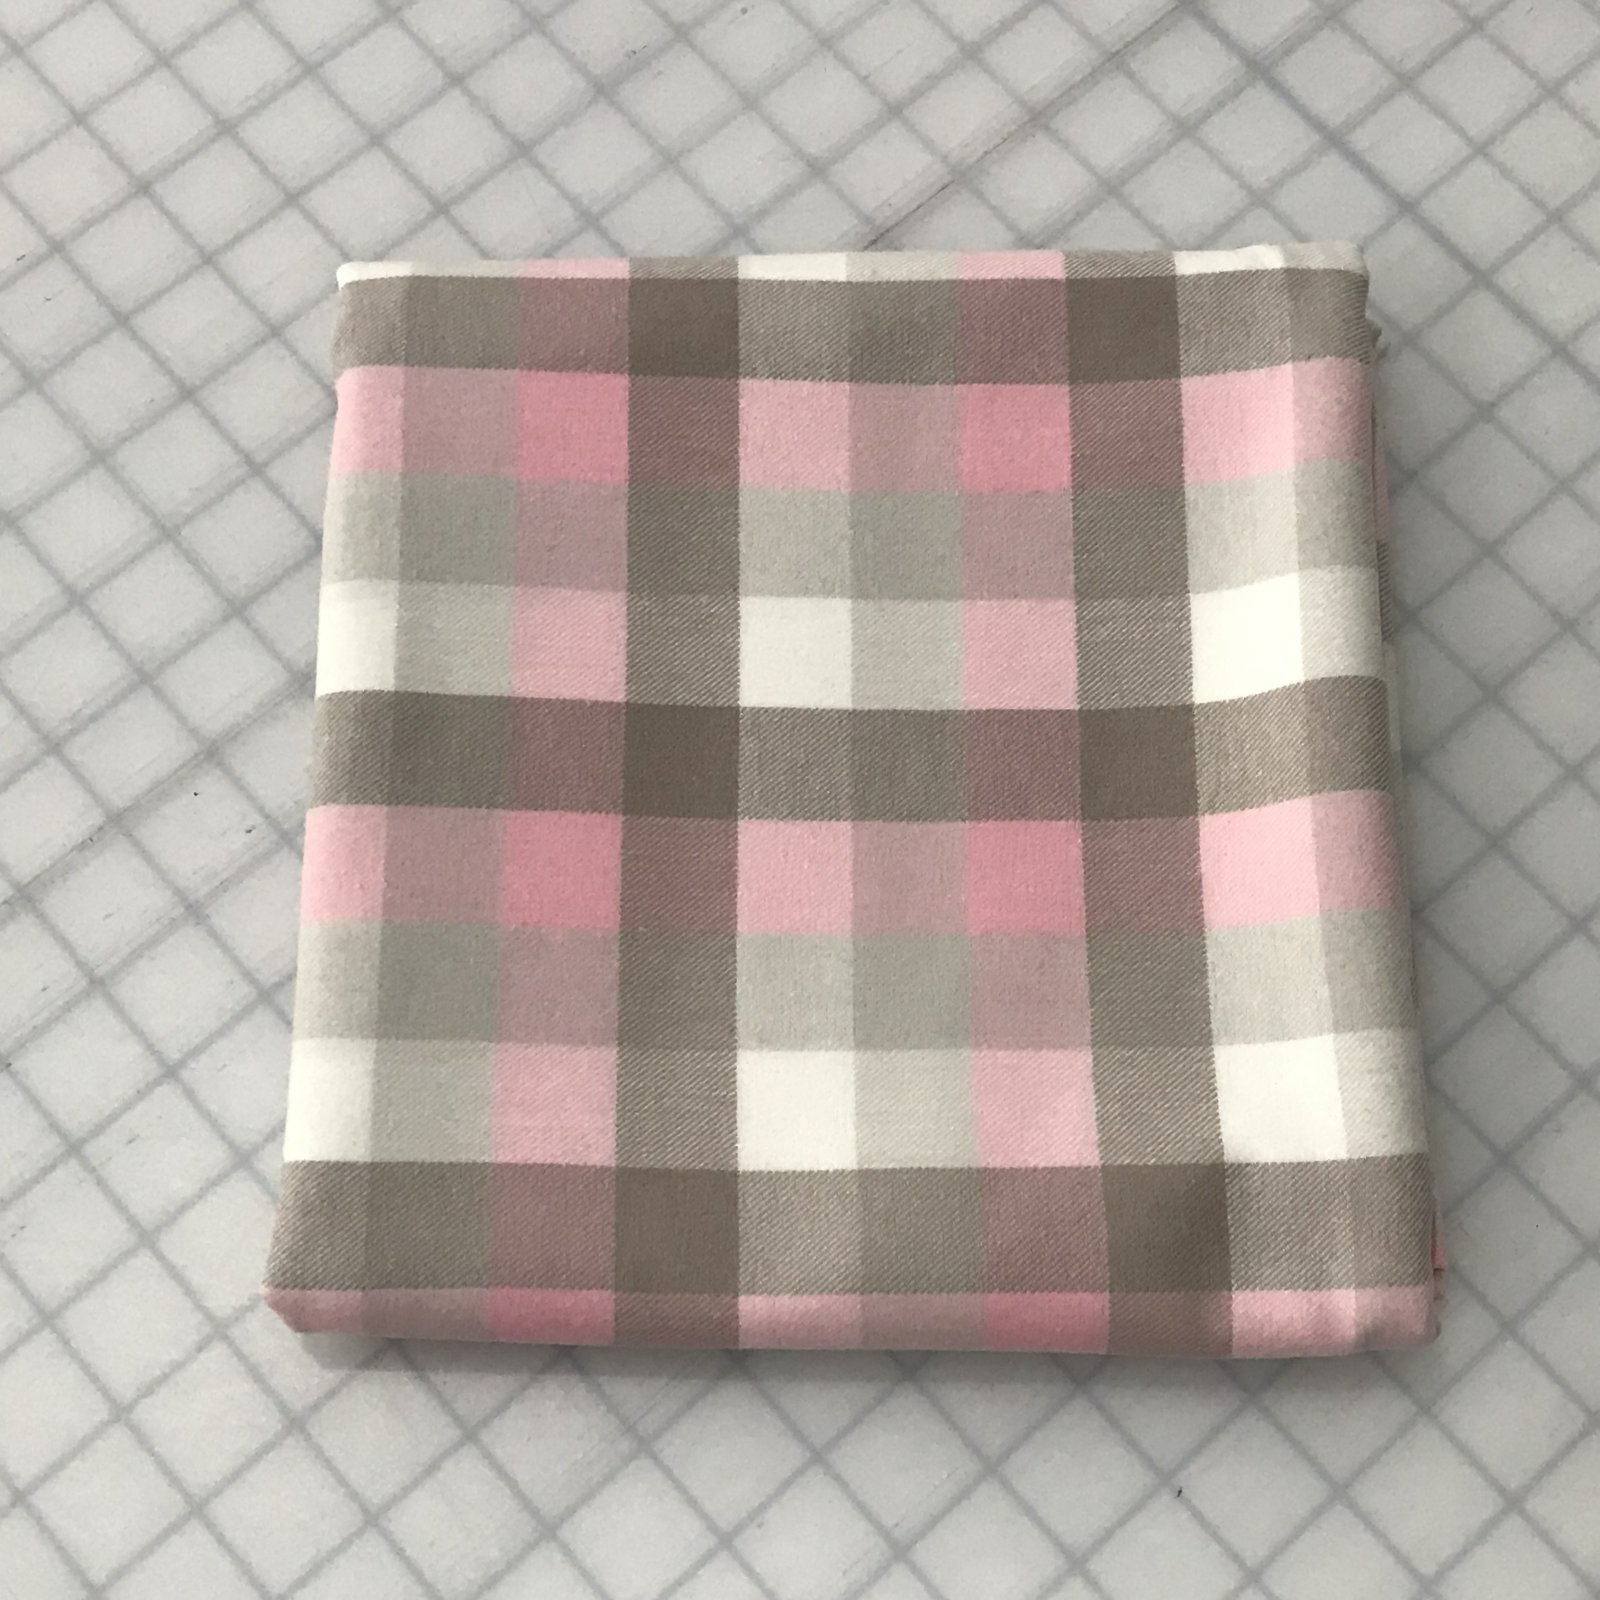 Soft Flannel - White/Oat/Pale Pink - 1 1/2 yard